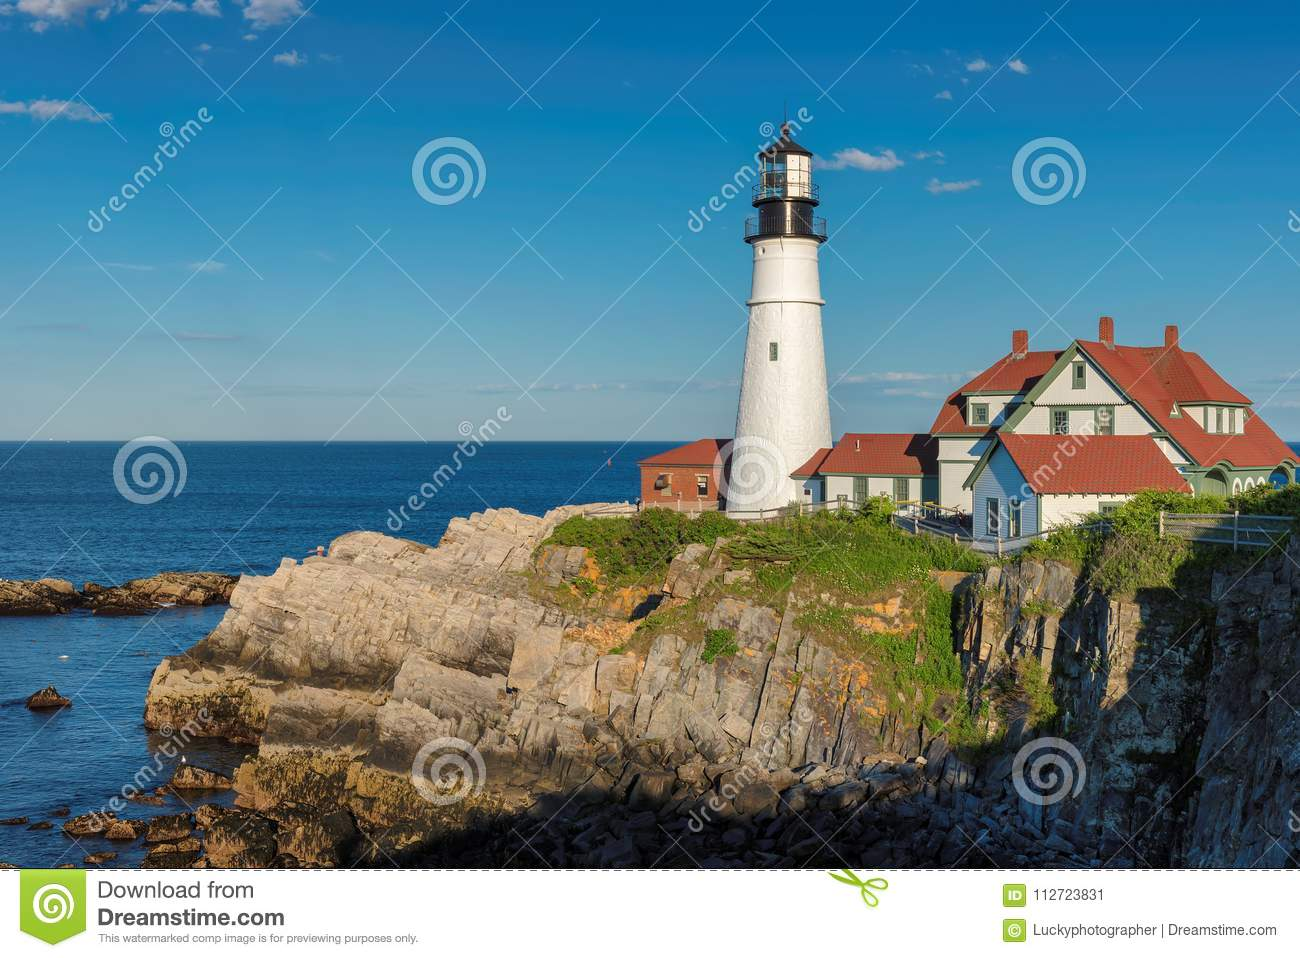 Portland Lighthouse in New England, Maine